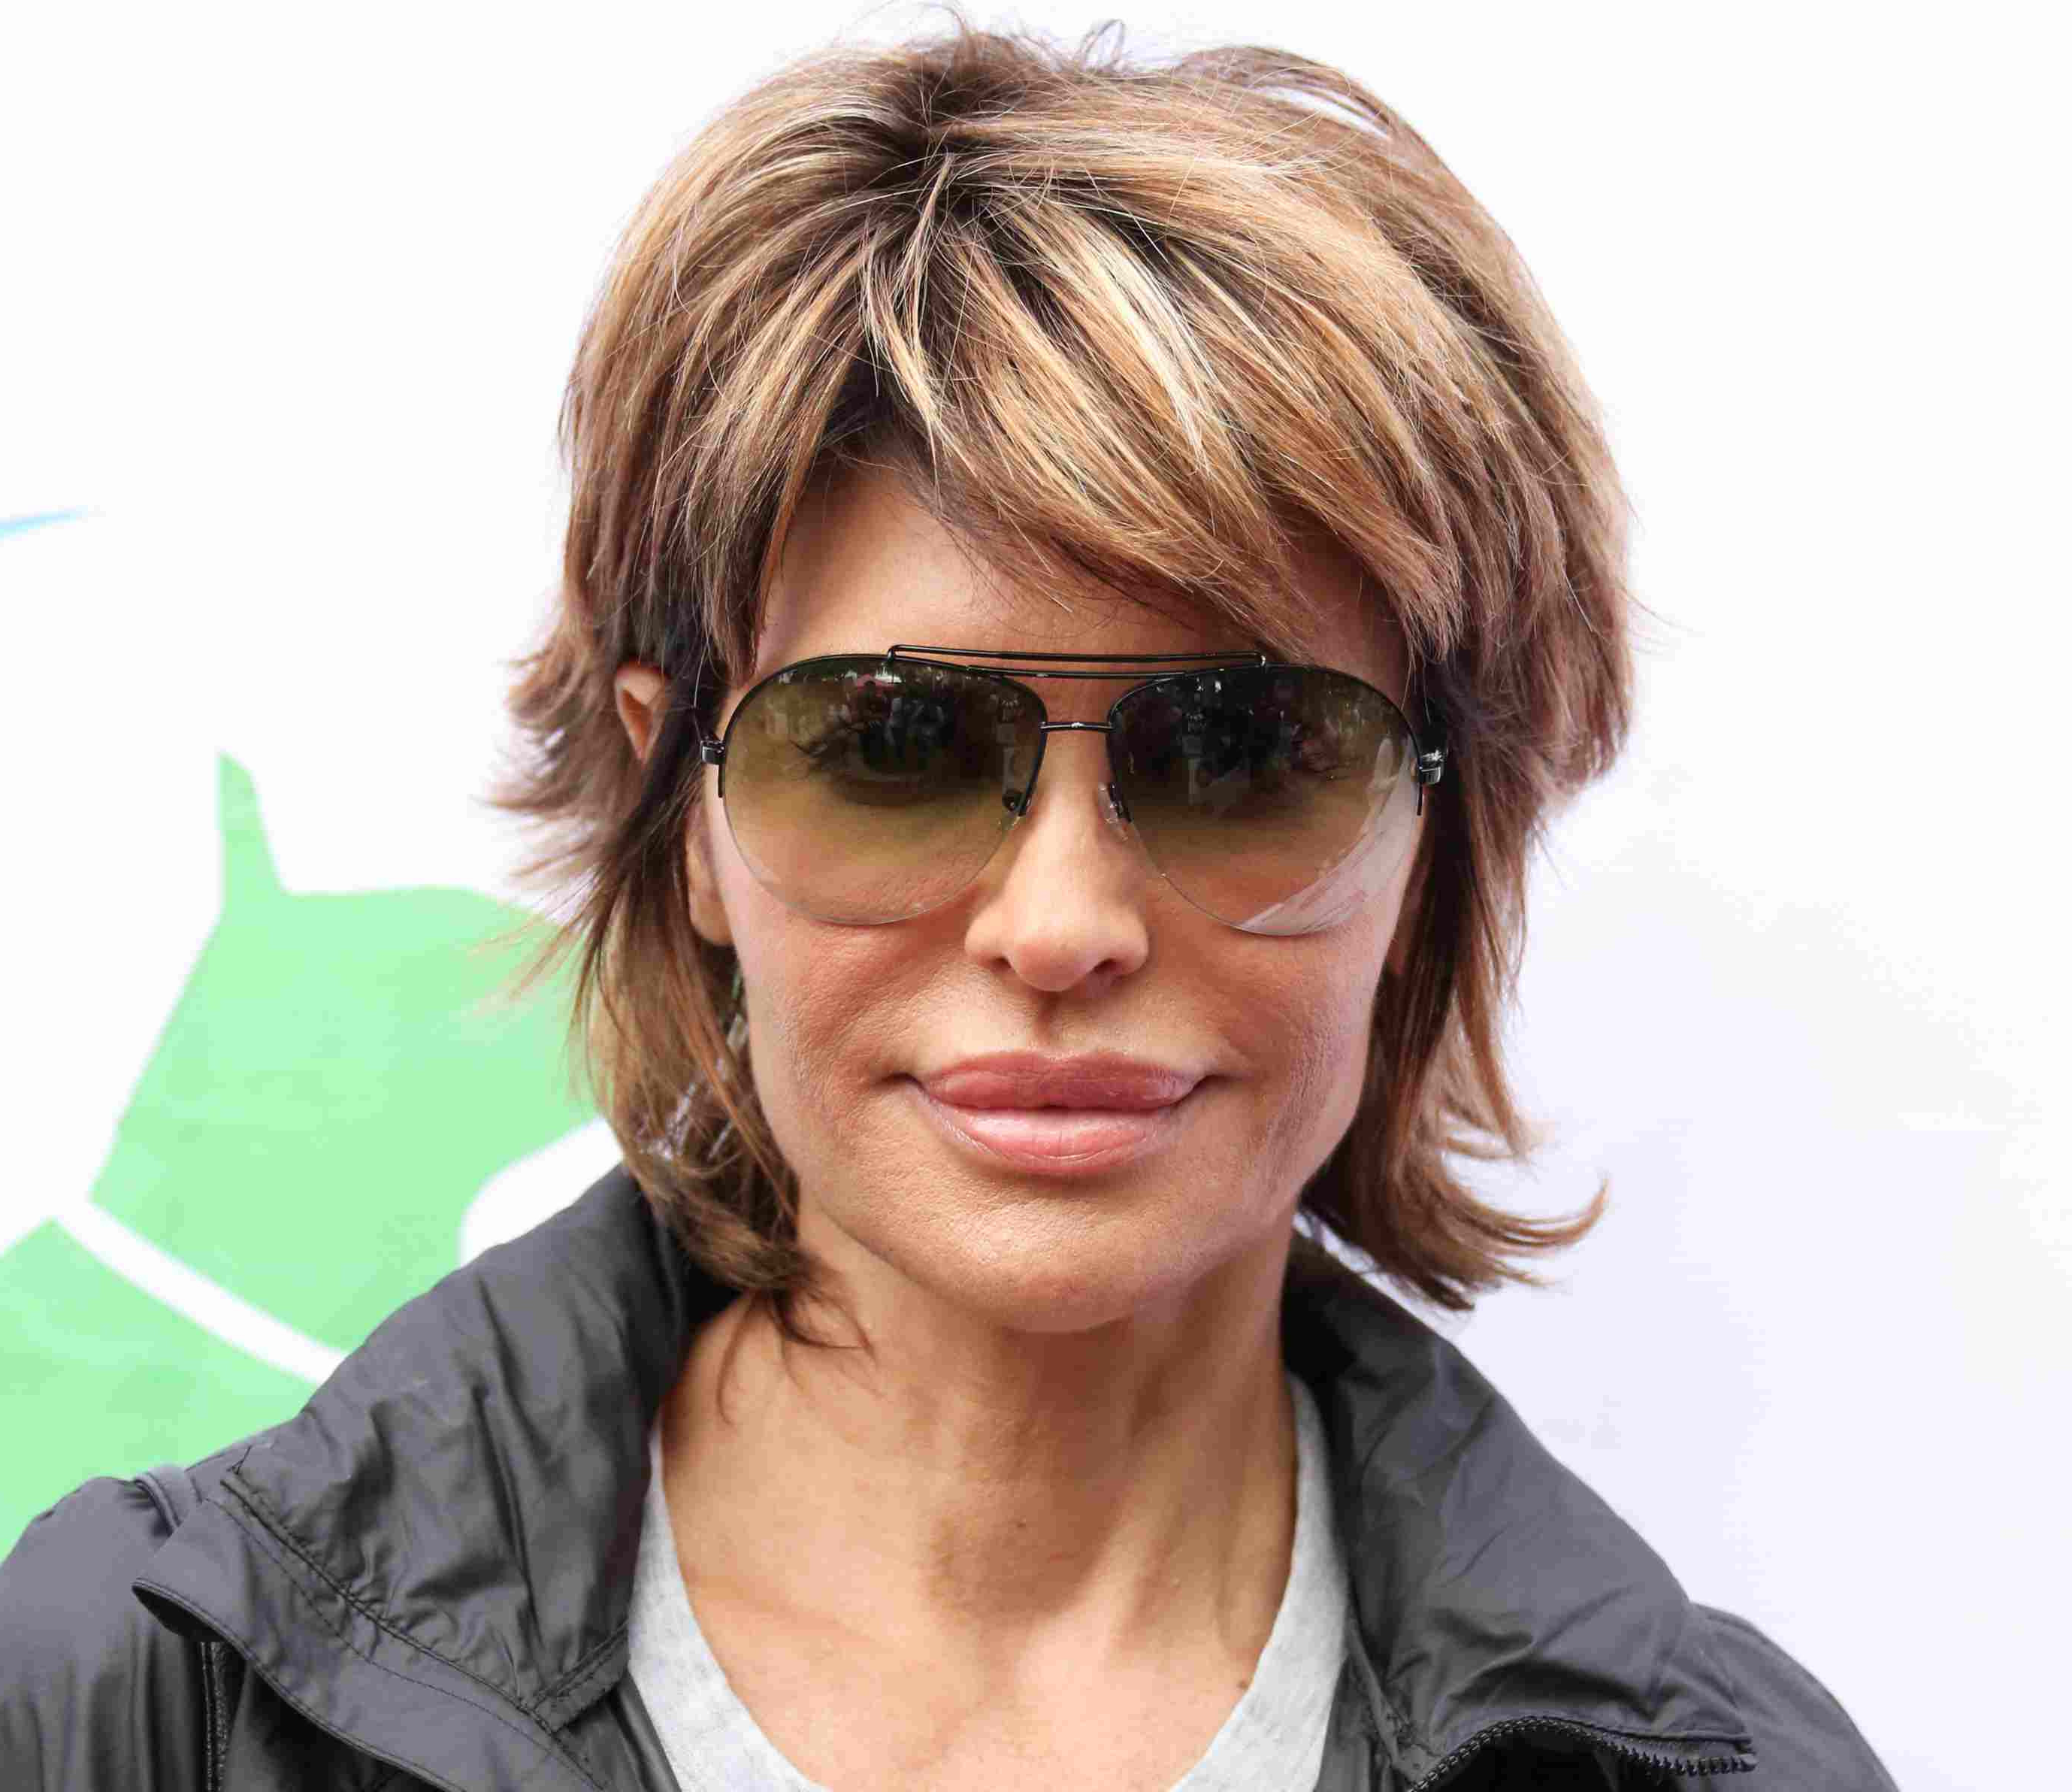 Short Hairstyles For Thin Hair And Glasses Best Of 34 Gorgeous Short Pertaining To Short Haircuts For Women With Glasses (View 14 of 25)